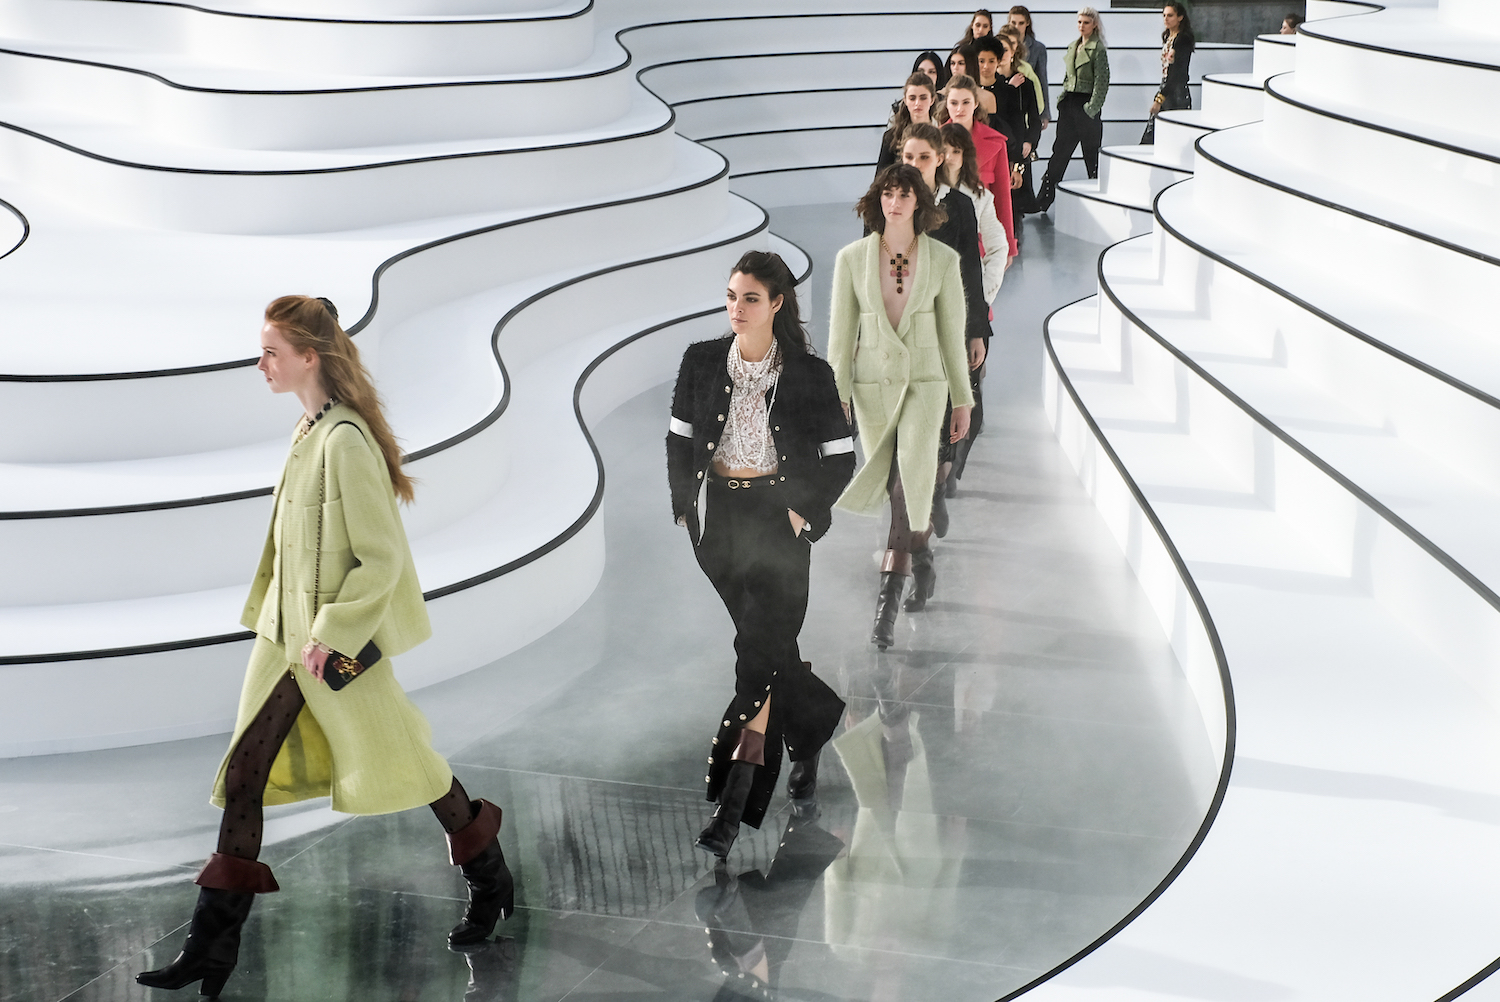 Chanel Fall/Winter 2020 Signifies the Start of a New Era